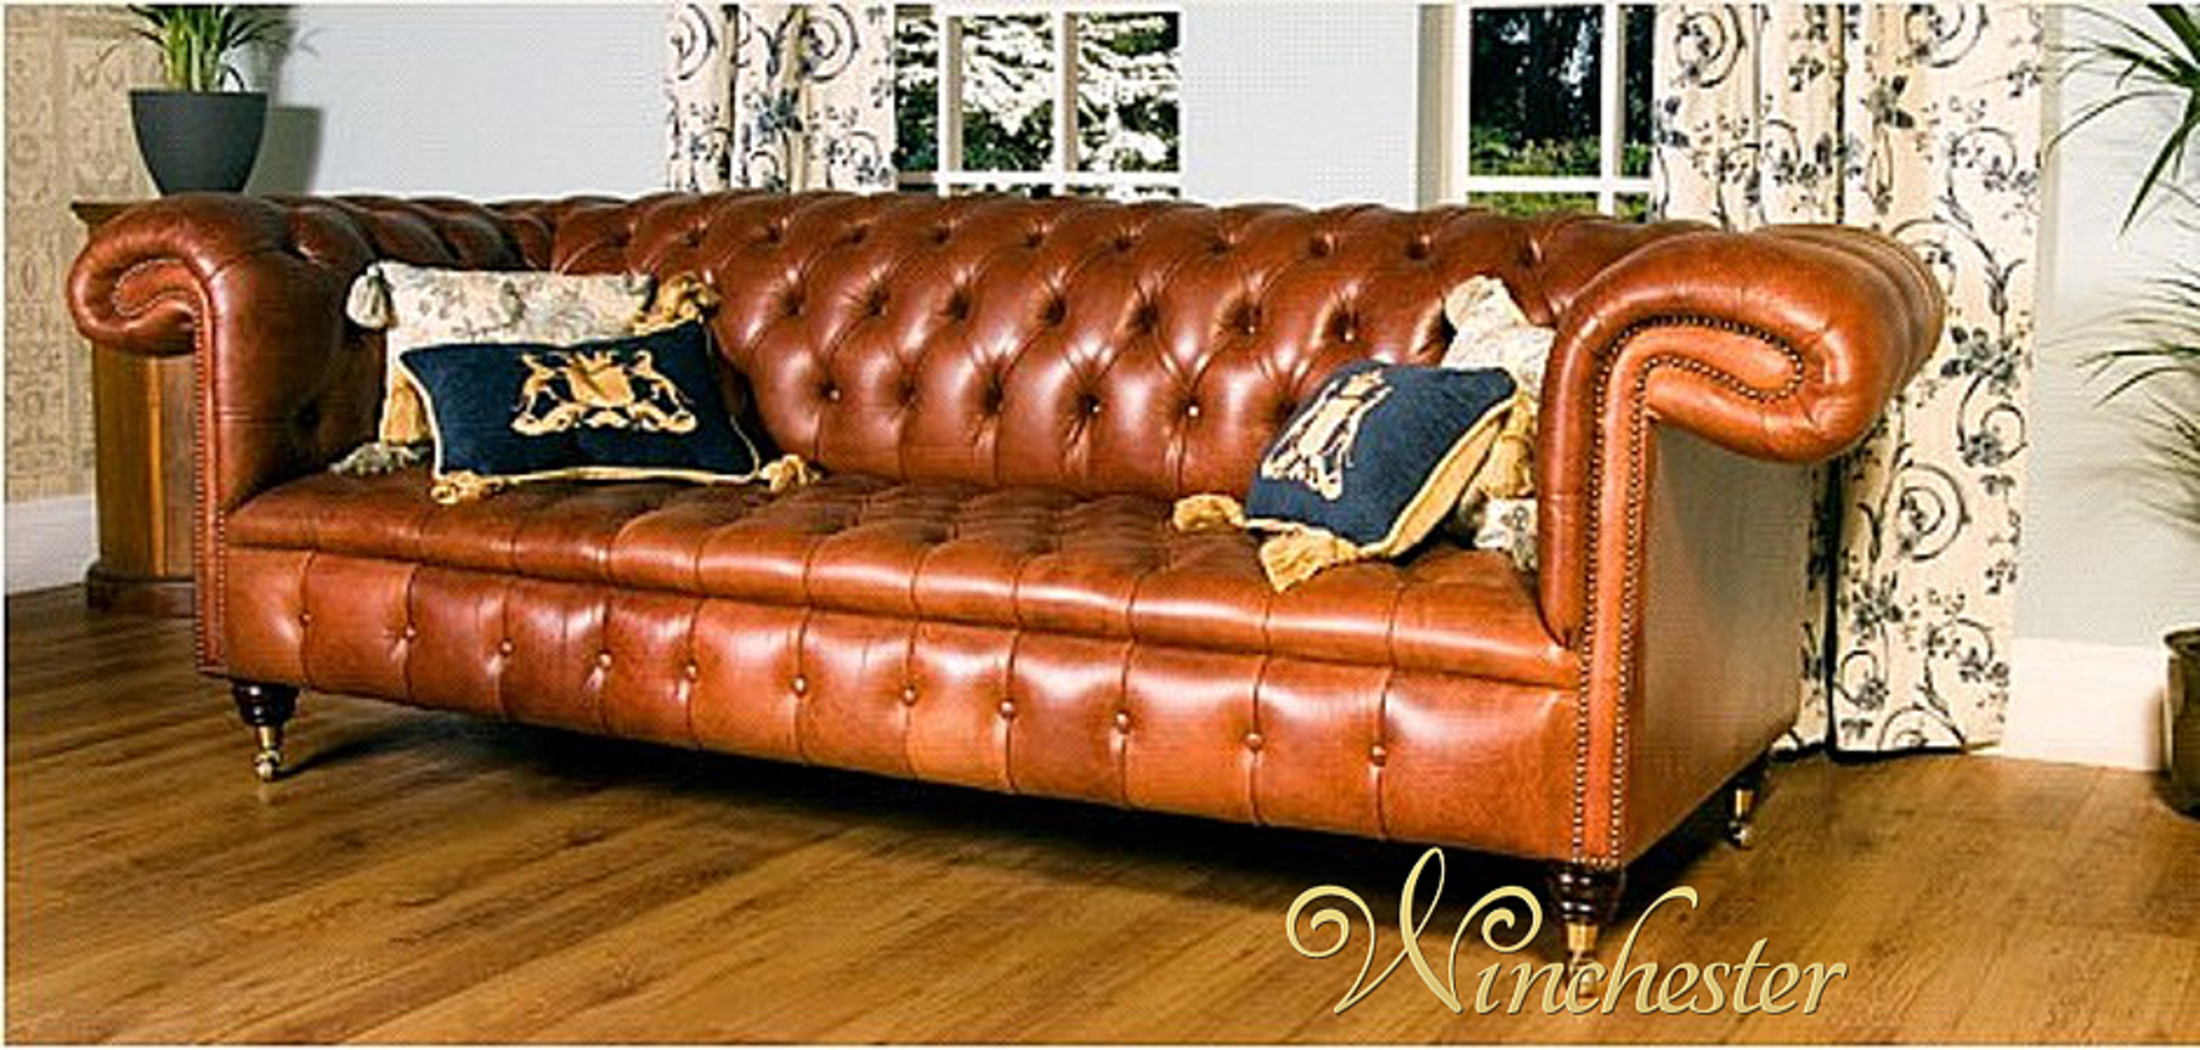 Chesterfield Chatsworth Sofa Collection Wc